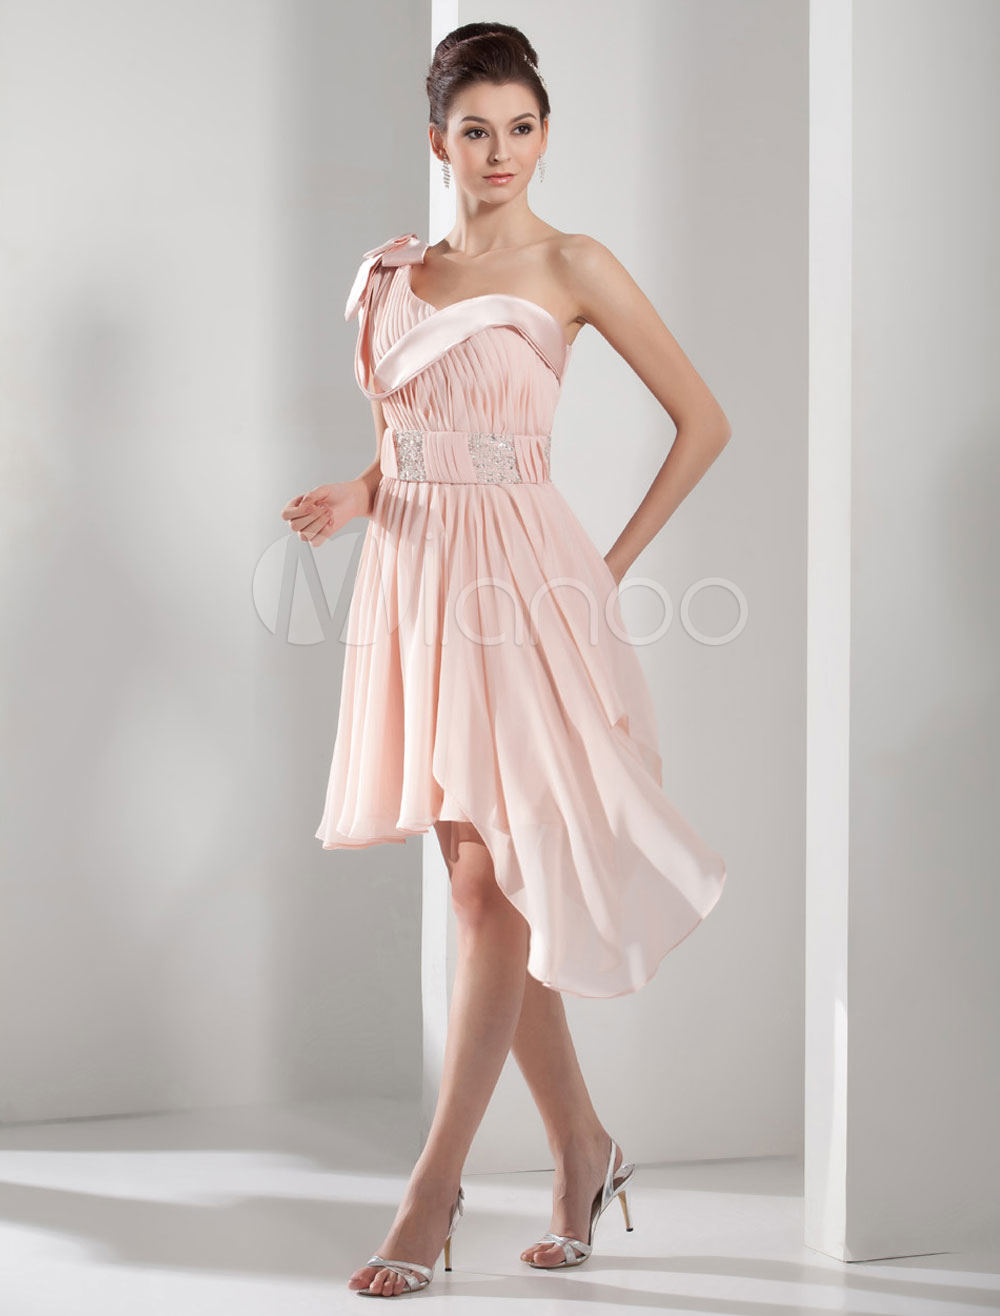 d26a26e8a72c ... One-Shoulder Homecoming Dress Pleated Beading A-Line Asymmetric Chiffon  Cocktail Dress Mini Prom. 12. 30%OFF. Color Peach